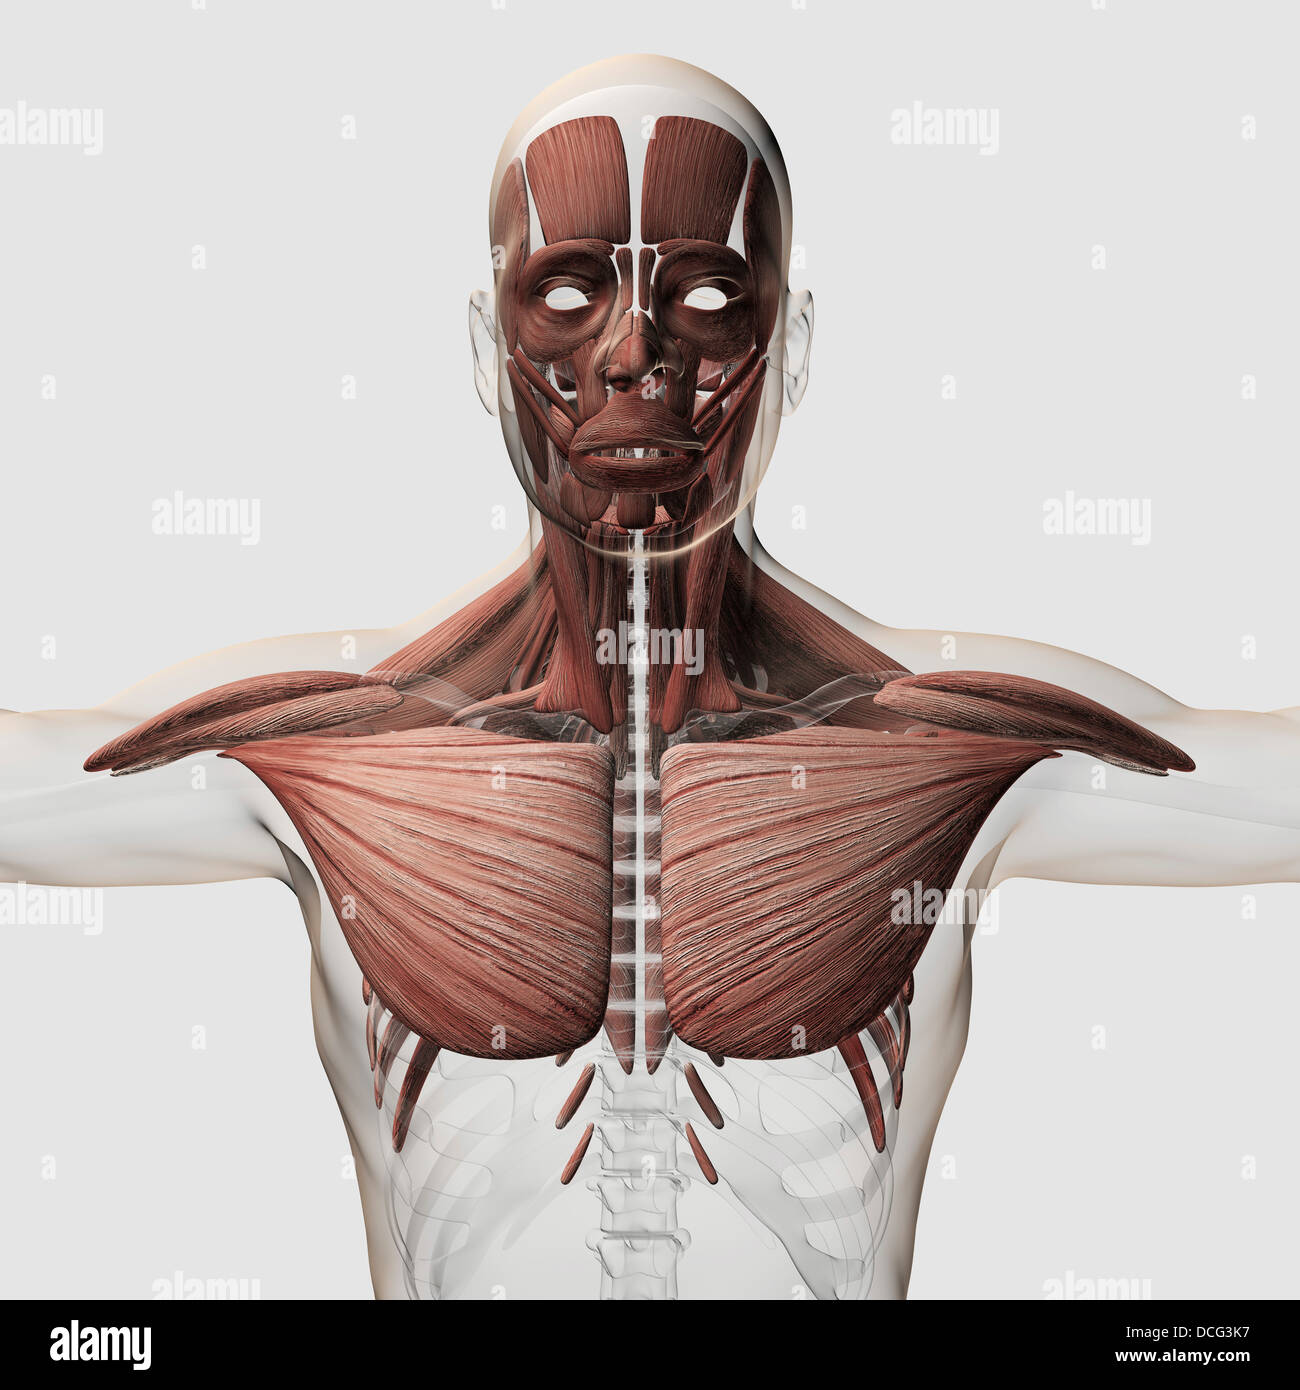 Male Chest Anatomy Stock Photos & Male Chest Anatomy Stock Images ...